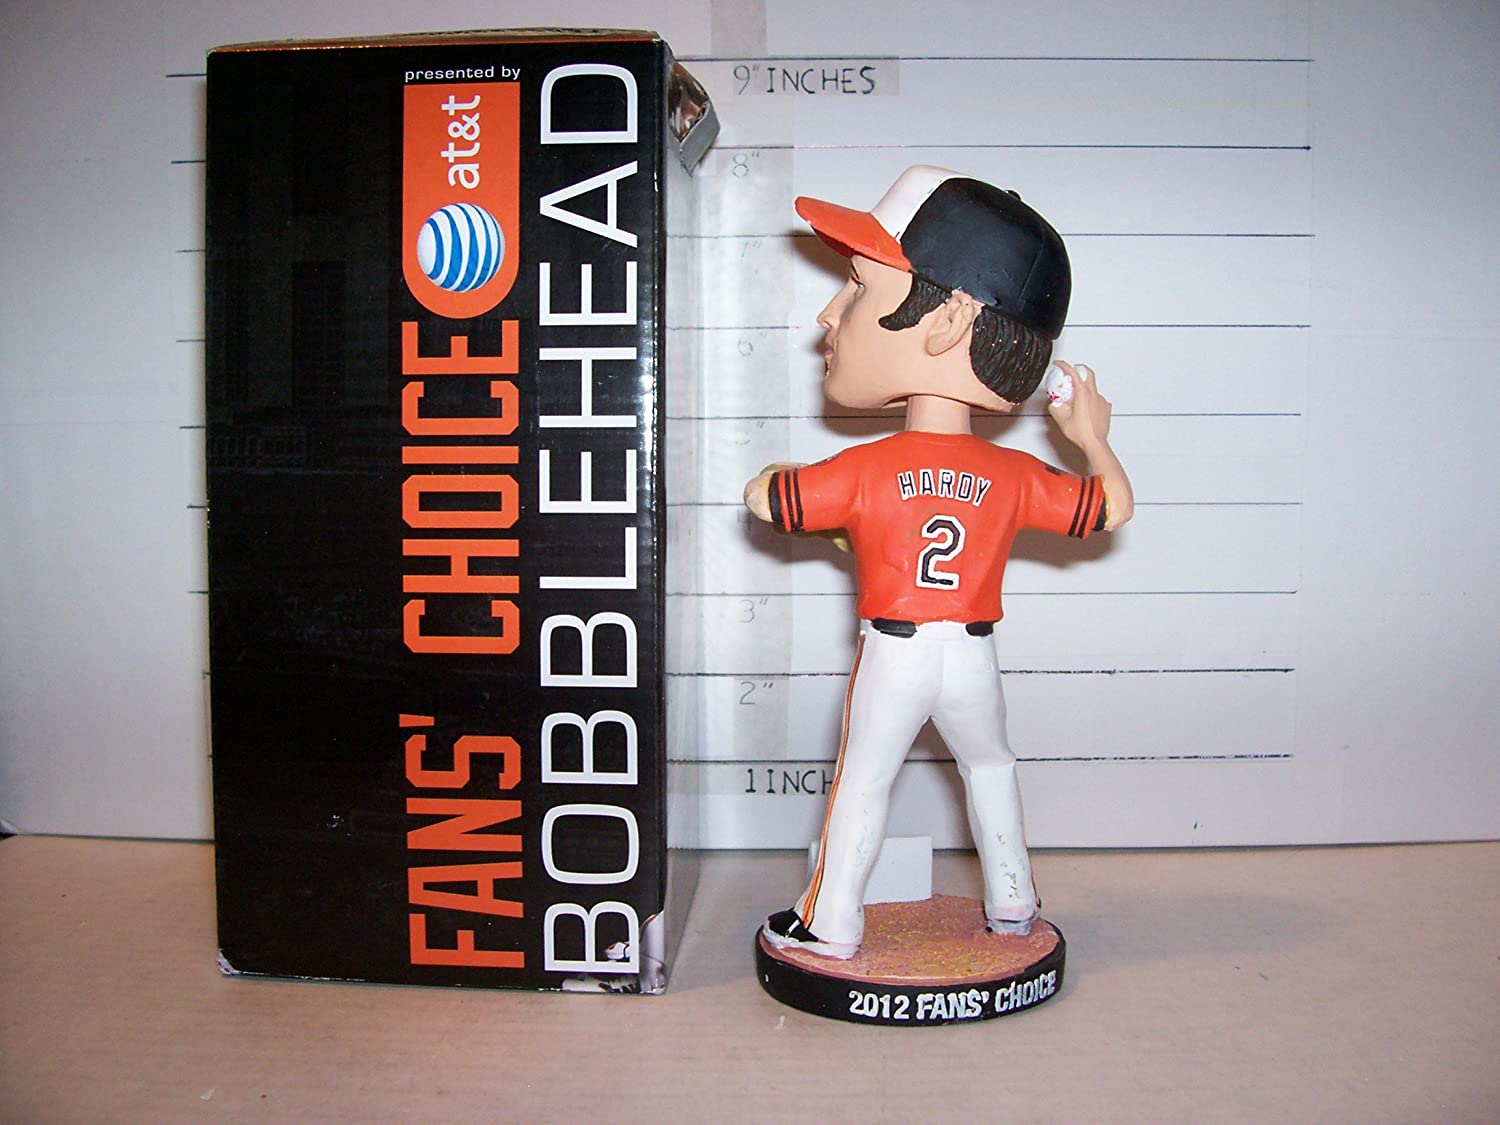 3db92880773 ... 2012 J.J. HARDY BALTIMORE ORIOLES FANS CHOICE BOBBLEHEAD FIGURINE SGA  NEW at Amazons Sports Collectibles Store ...